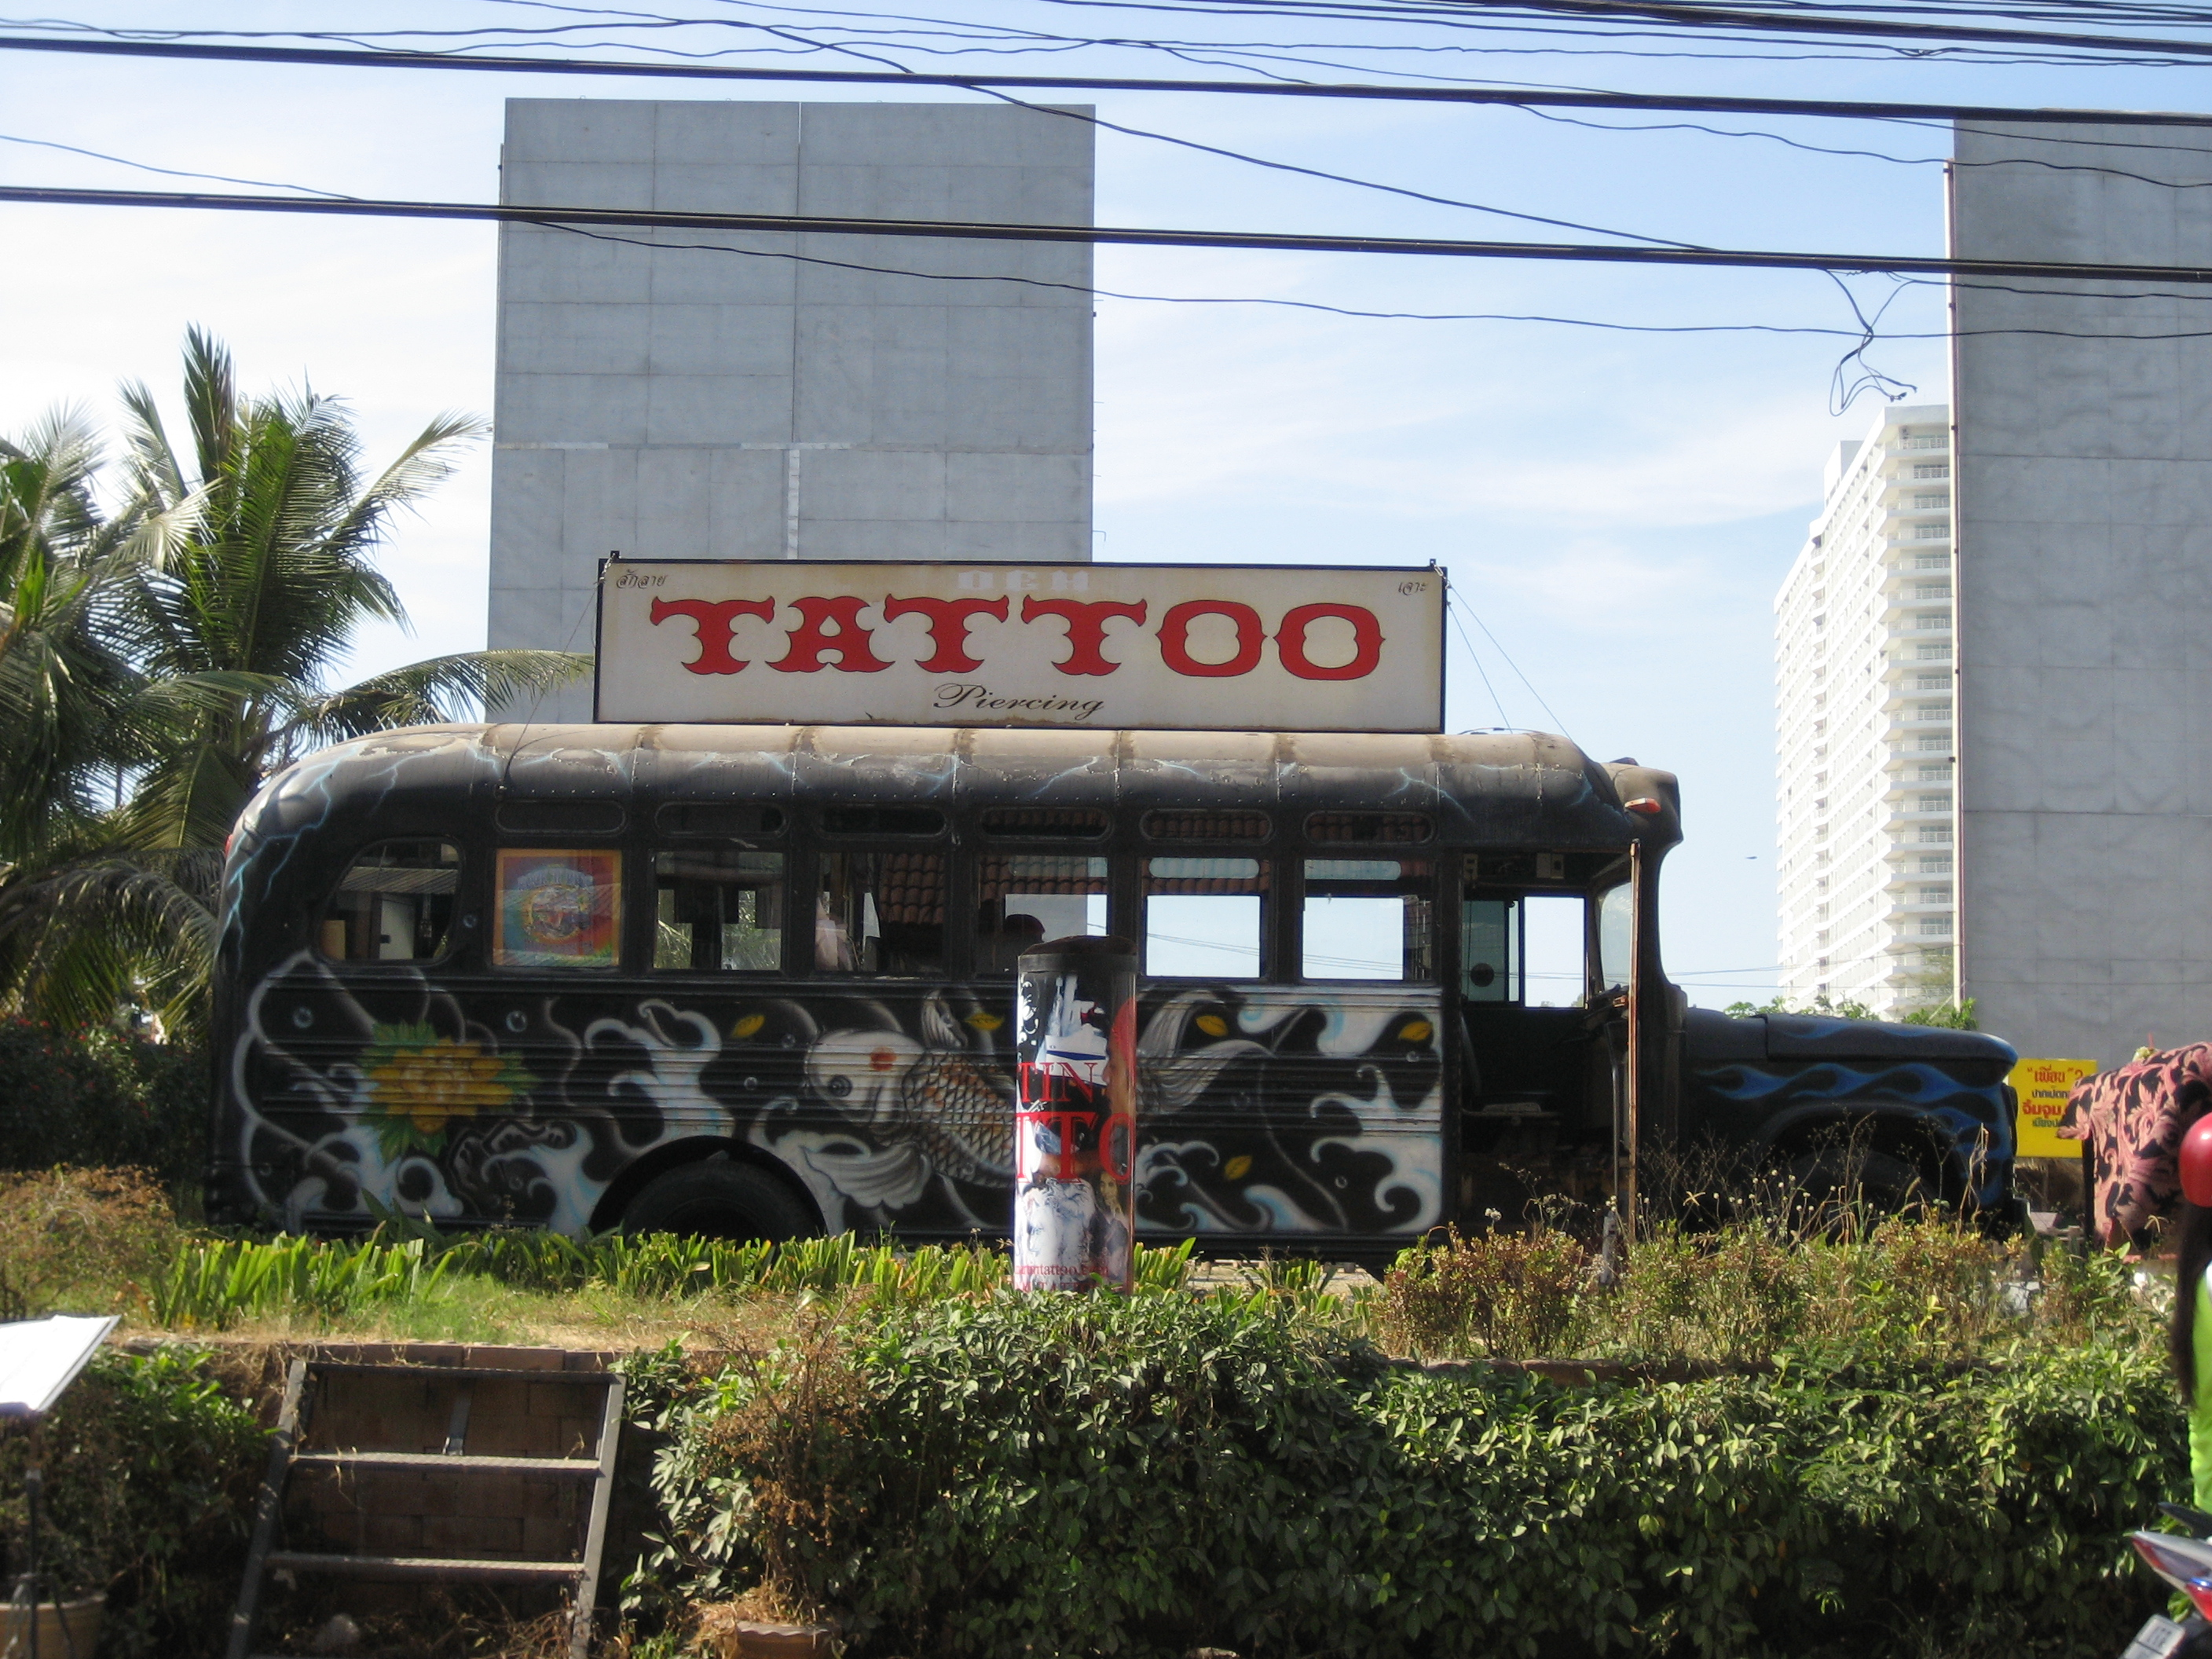 Tattoo Shop.jpg